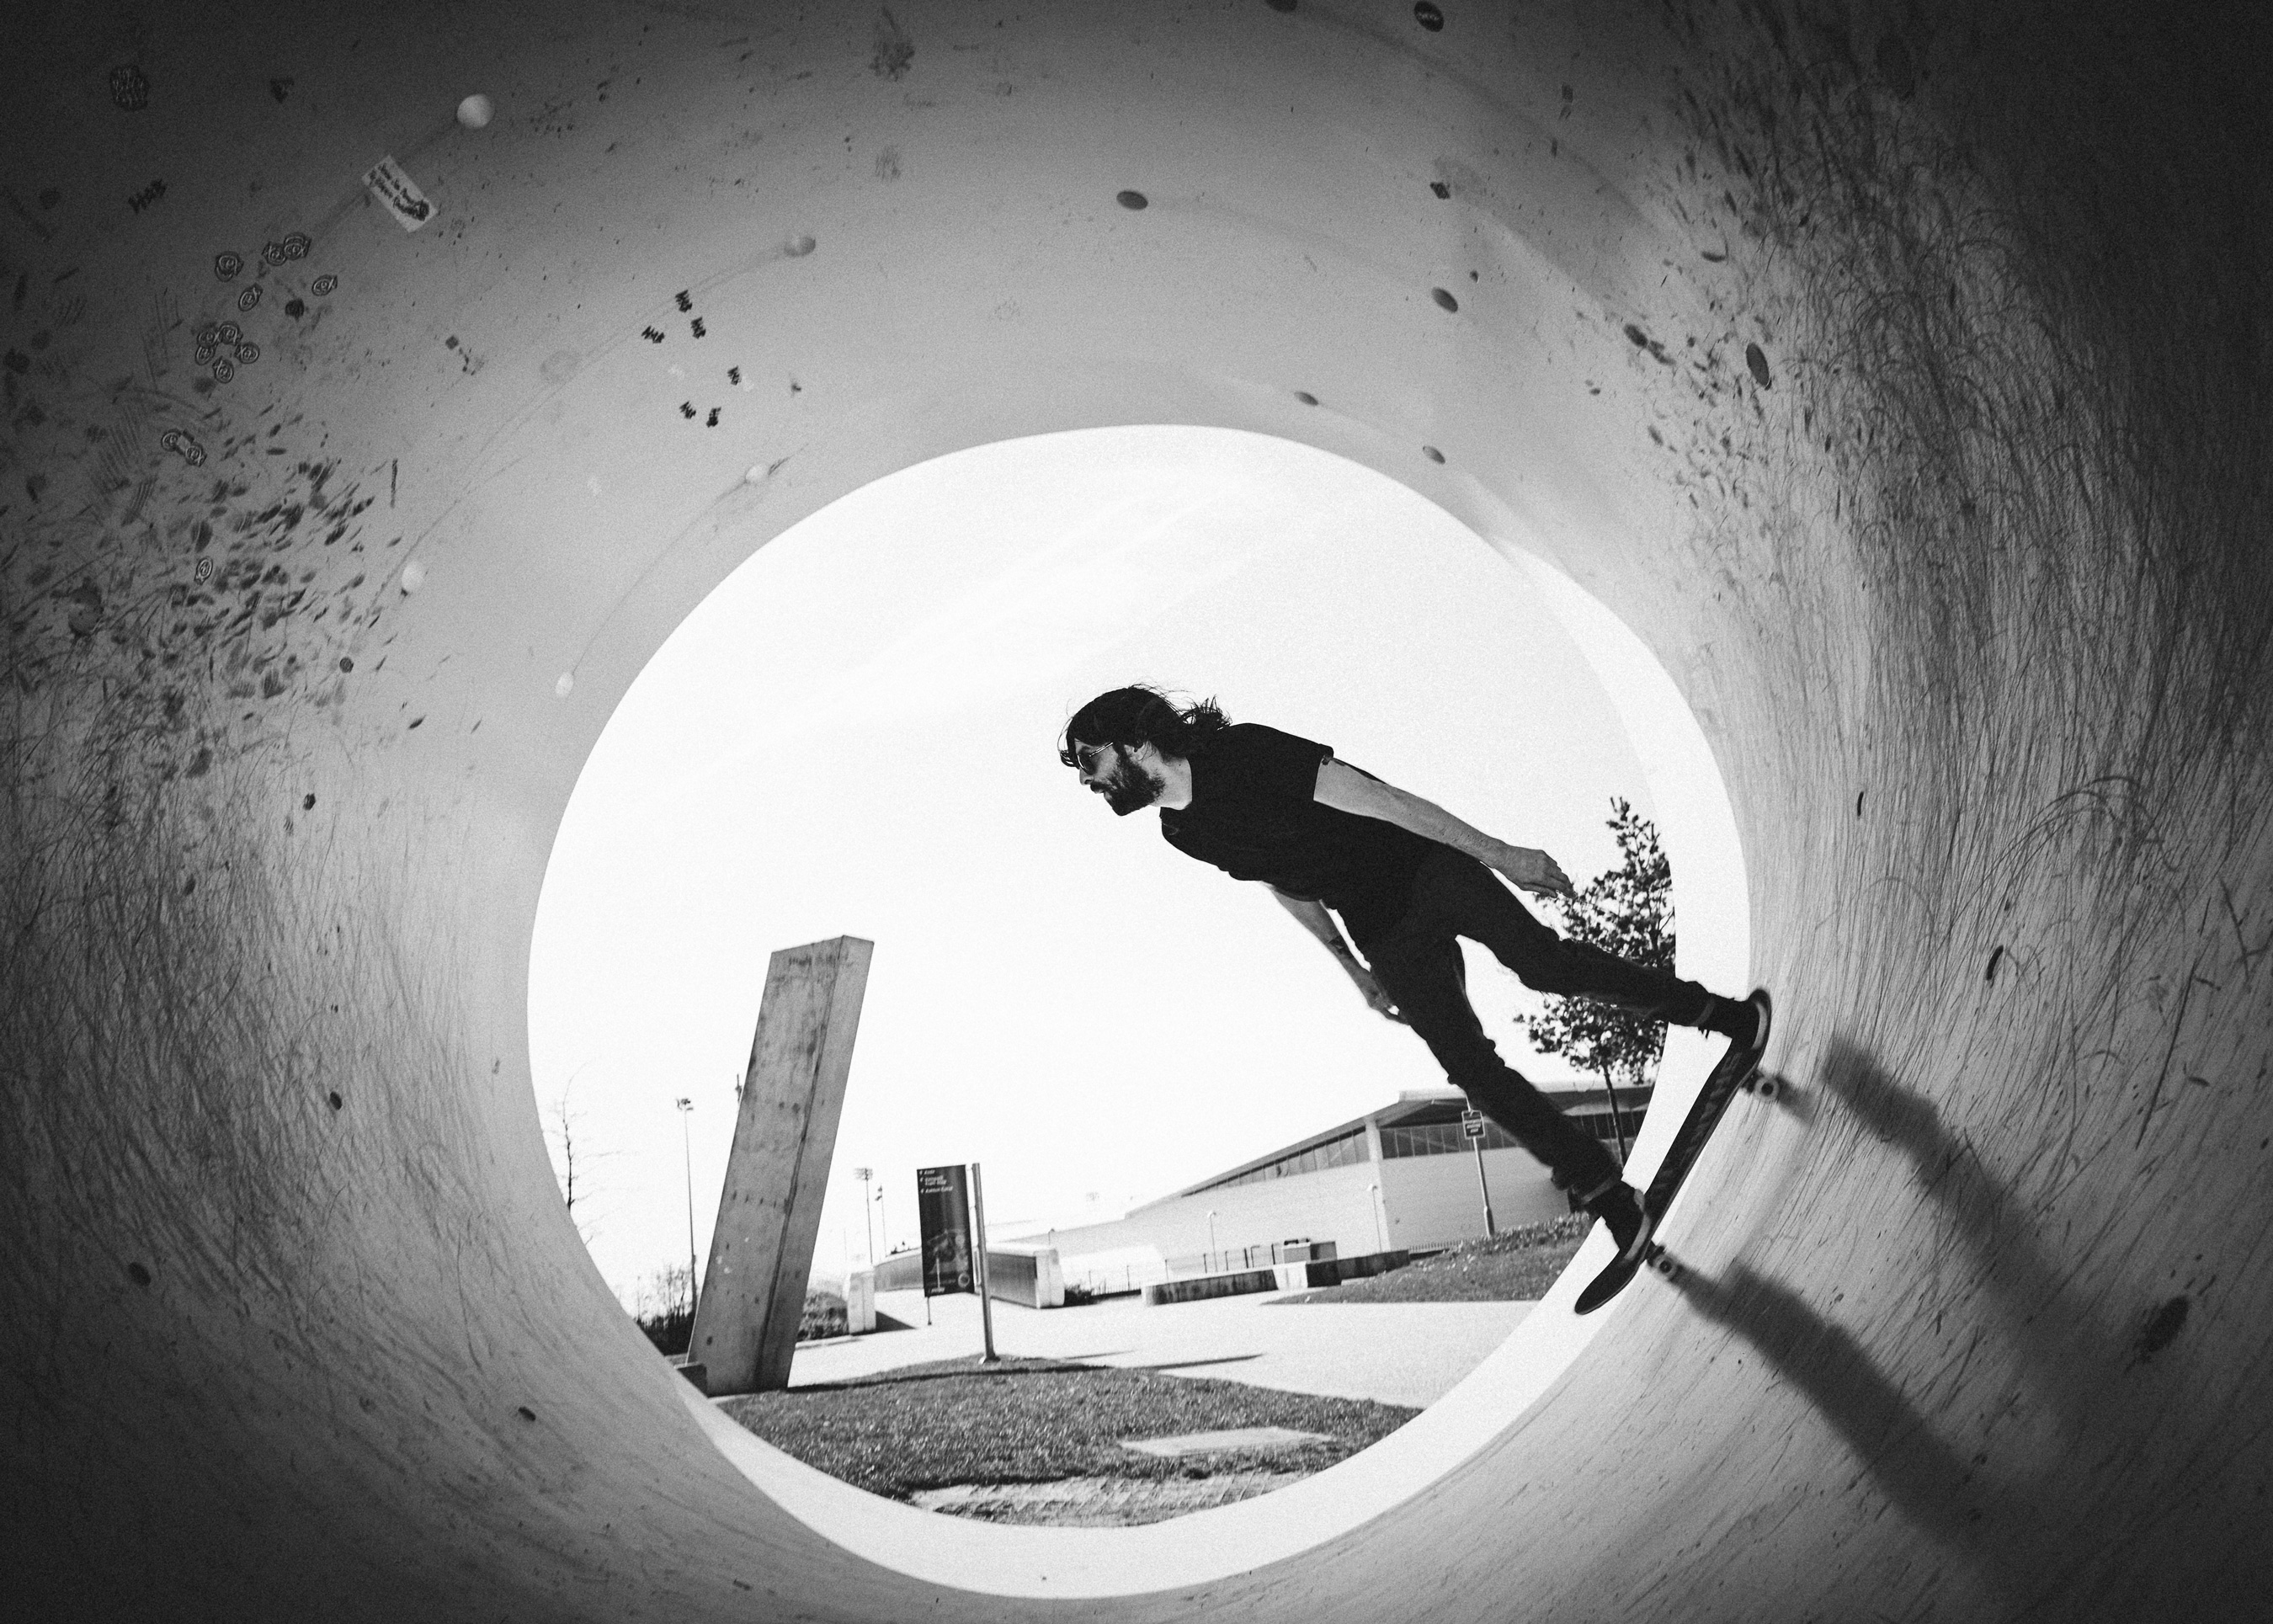 Matt-Stansfield-Photographer-lifestyle-ben-grove-skateboard-323